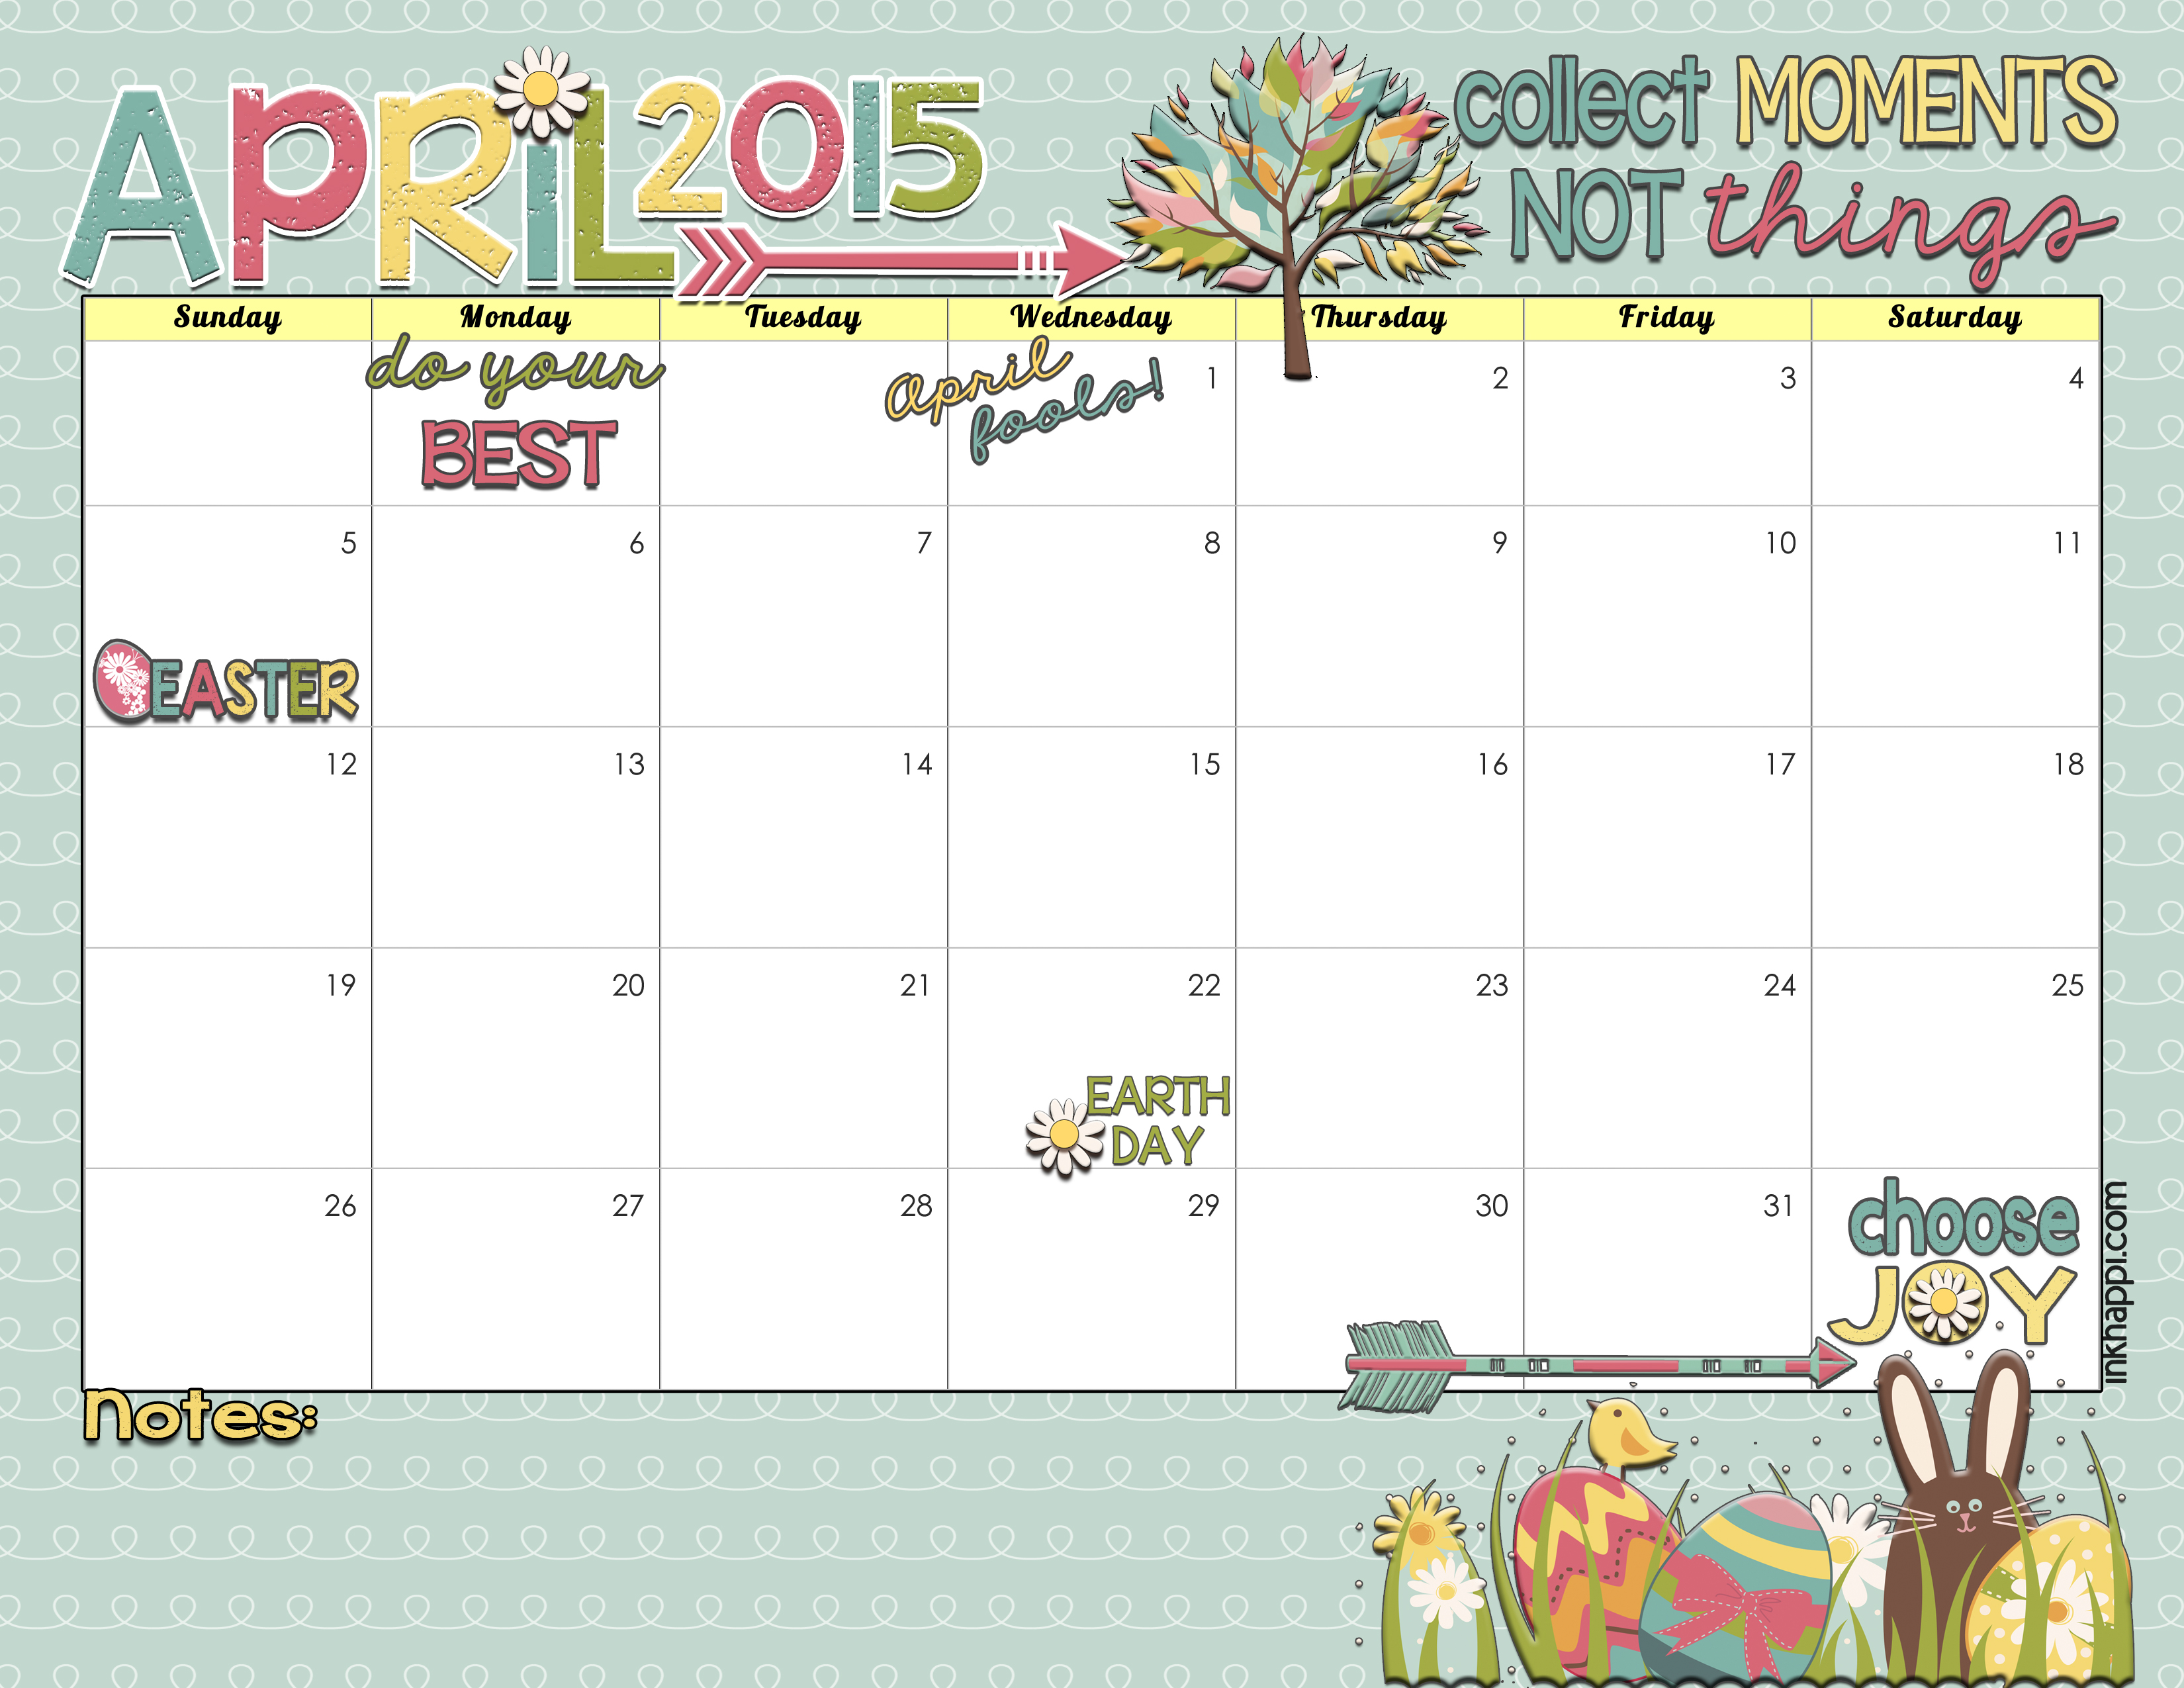 Yay! MARCH 2015 calendar from inkhappi